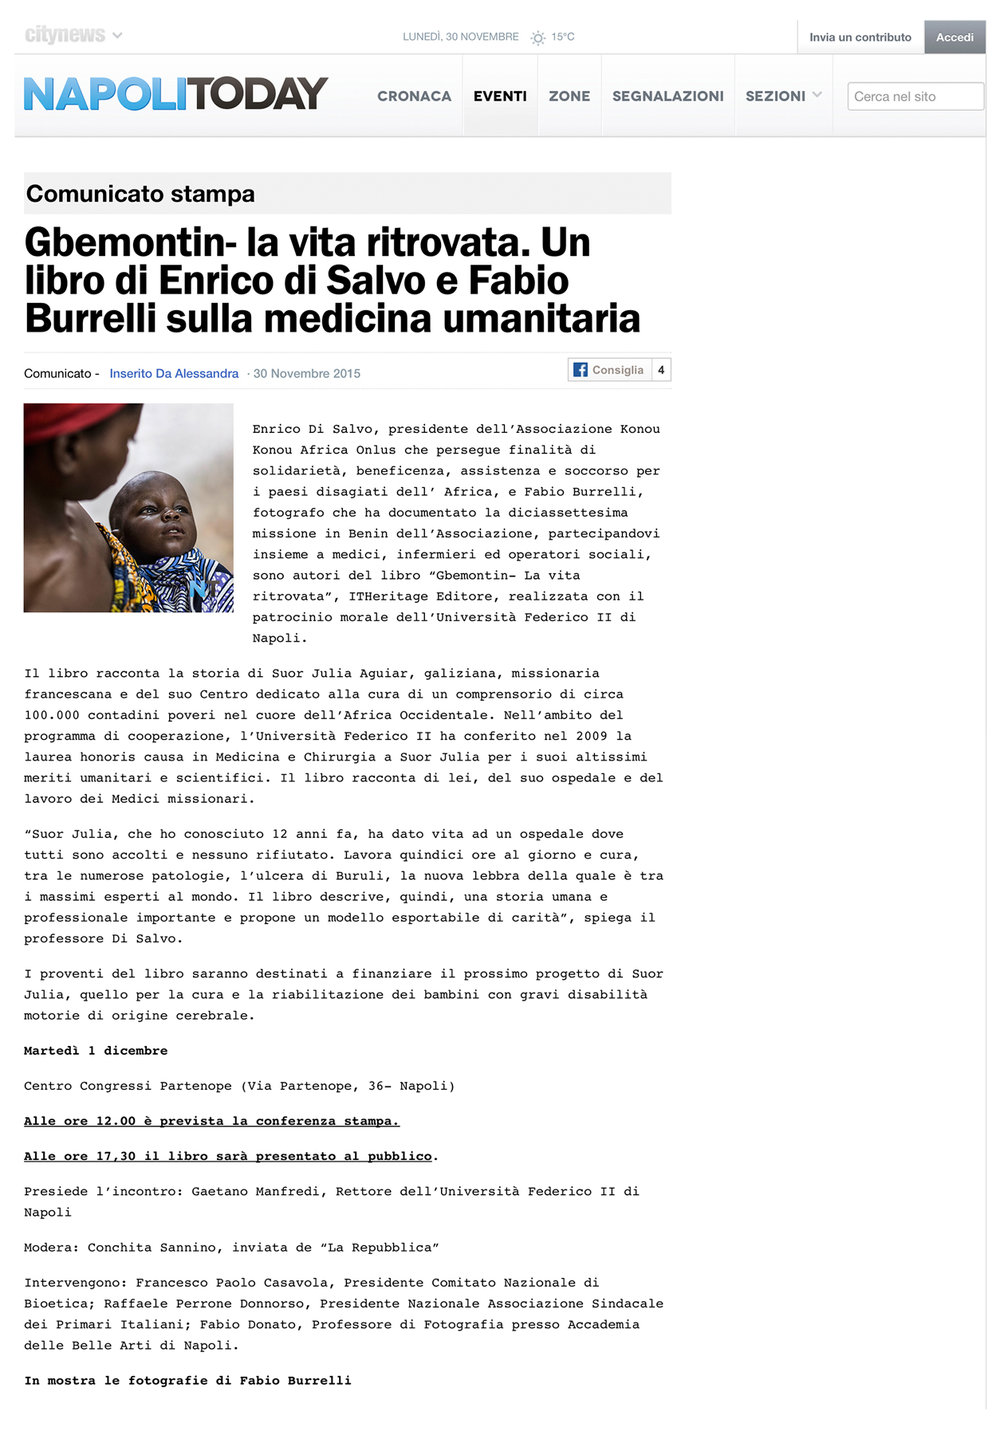 Gbemontin - Back again to life   http://www.napolitoday.it/eventi/gbemontin-la-vita-ritrovata.html